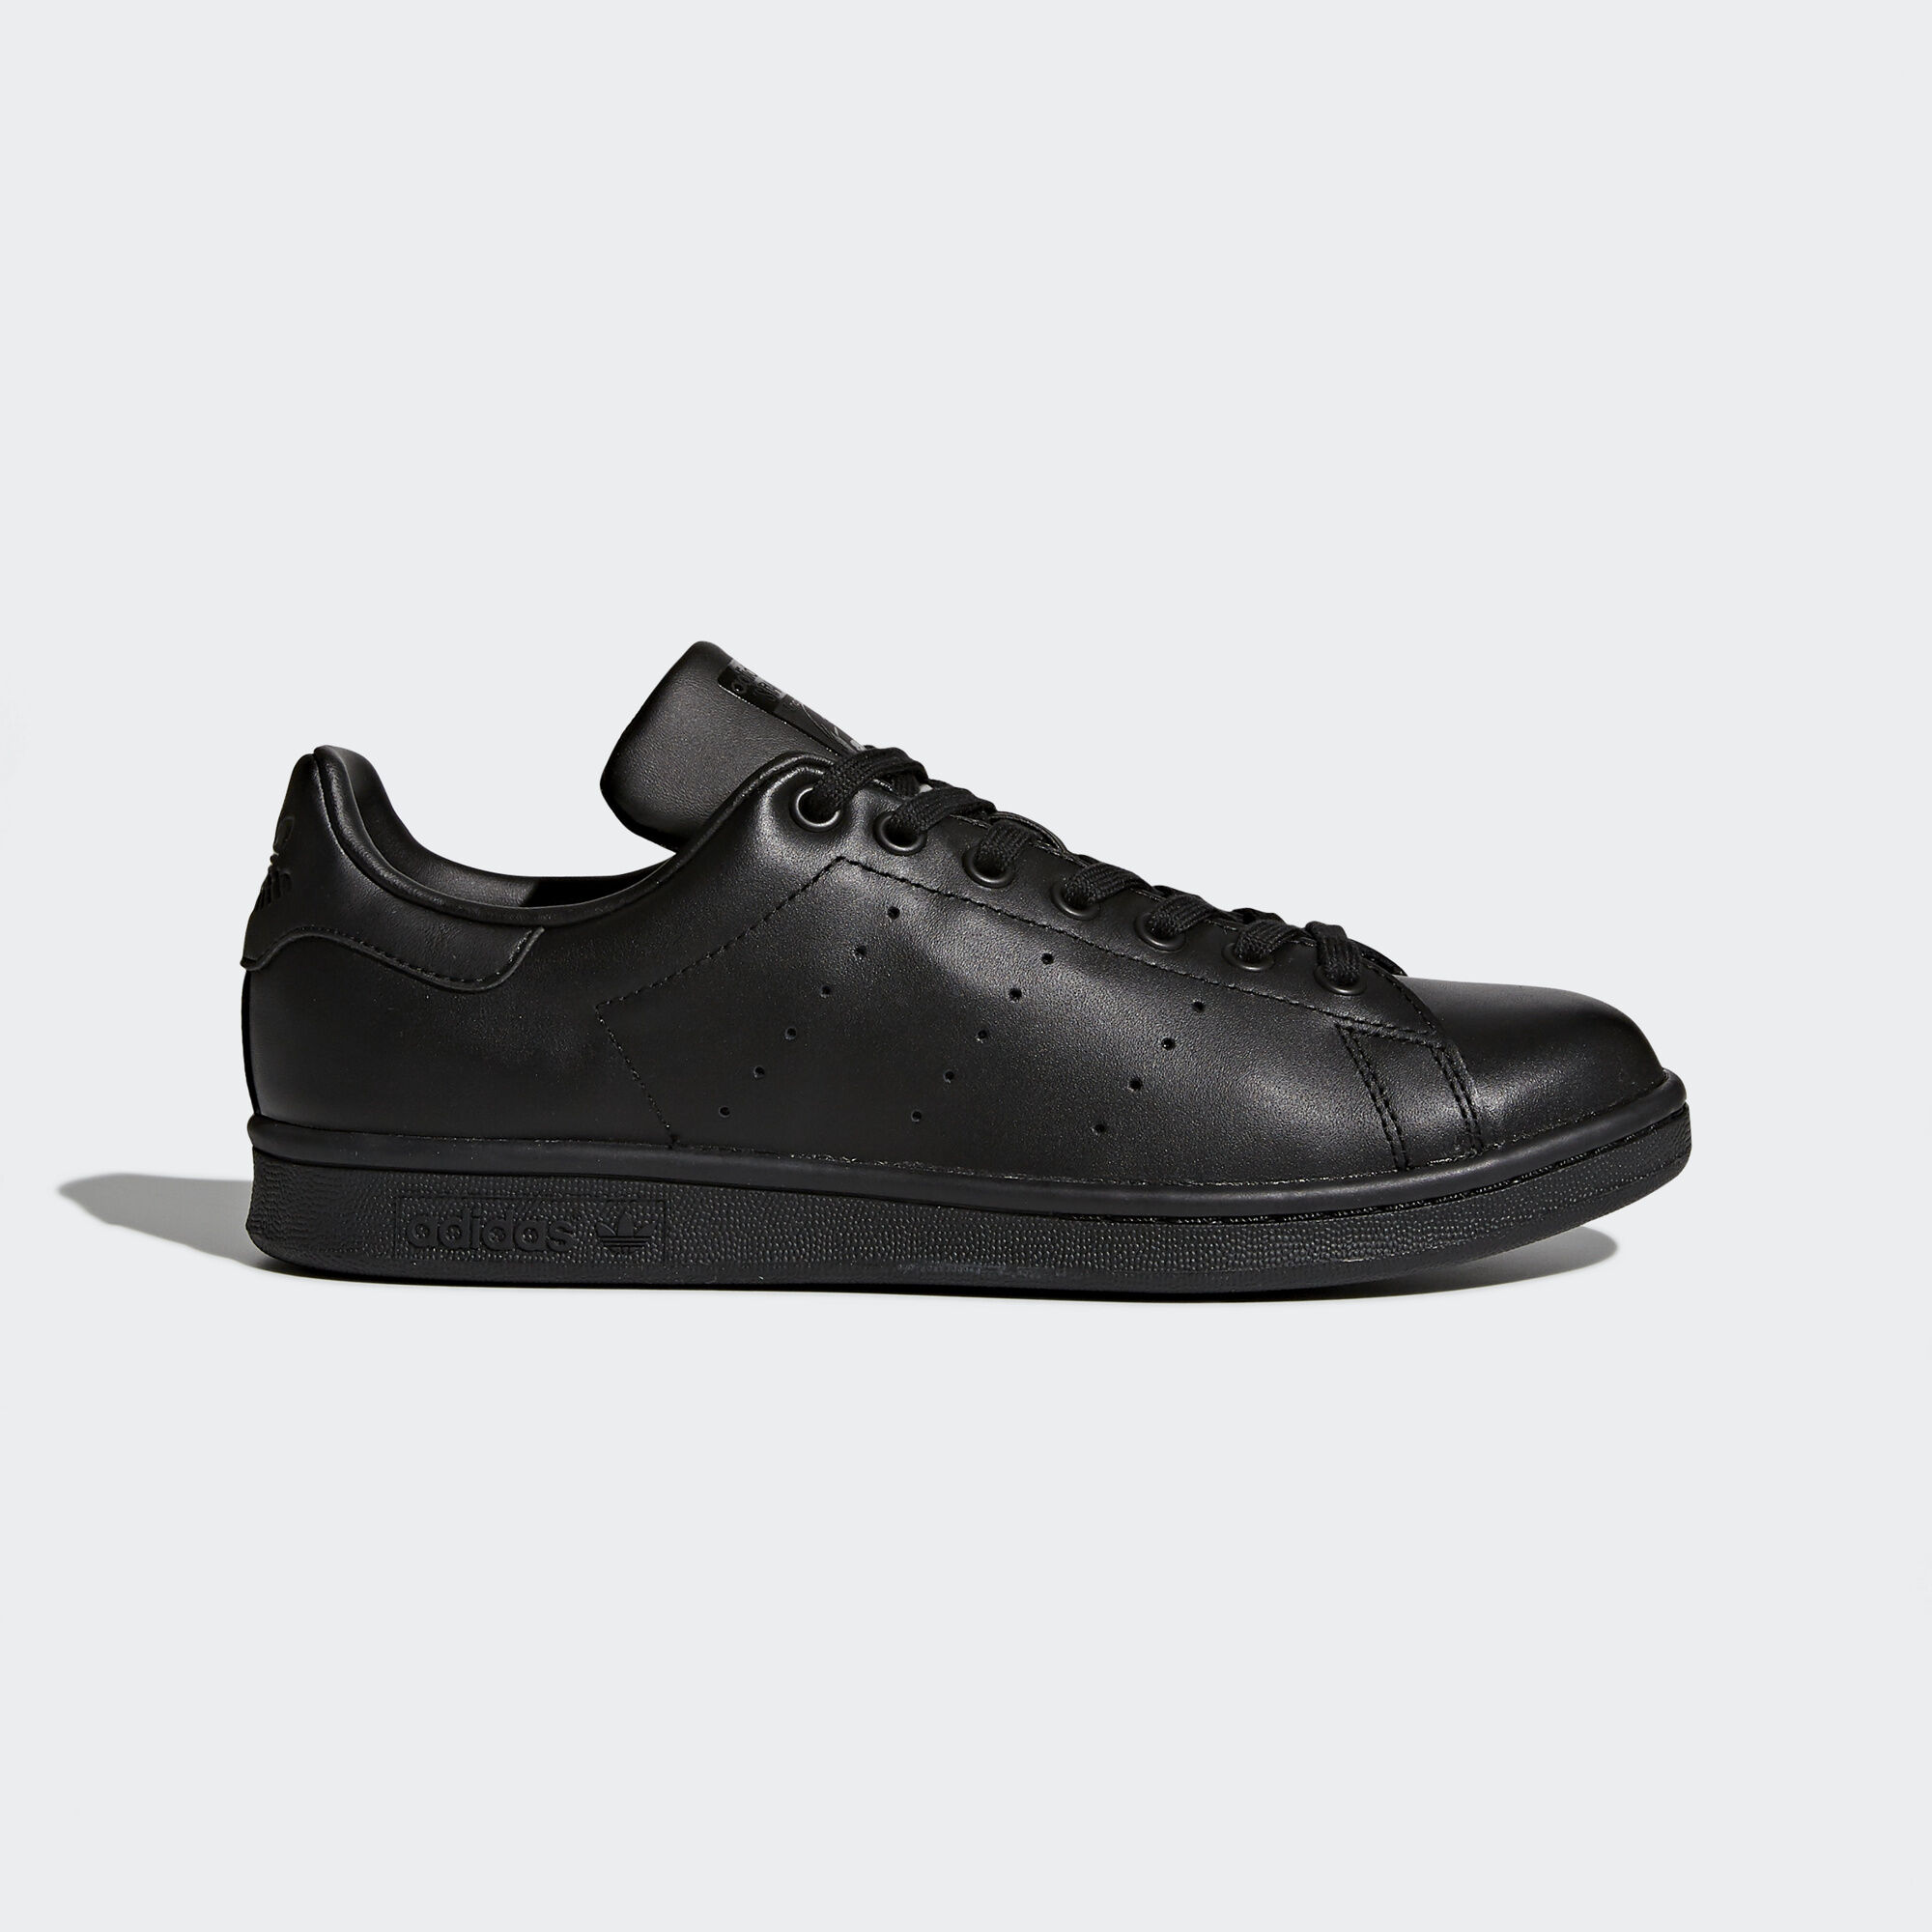 Stan Smith Nere Nuove